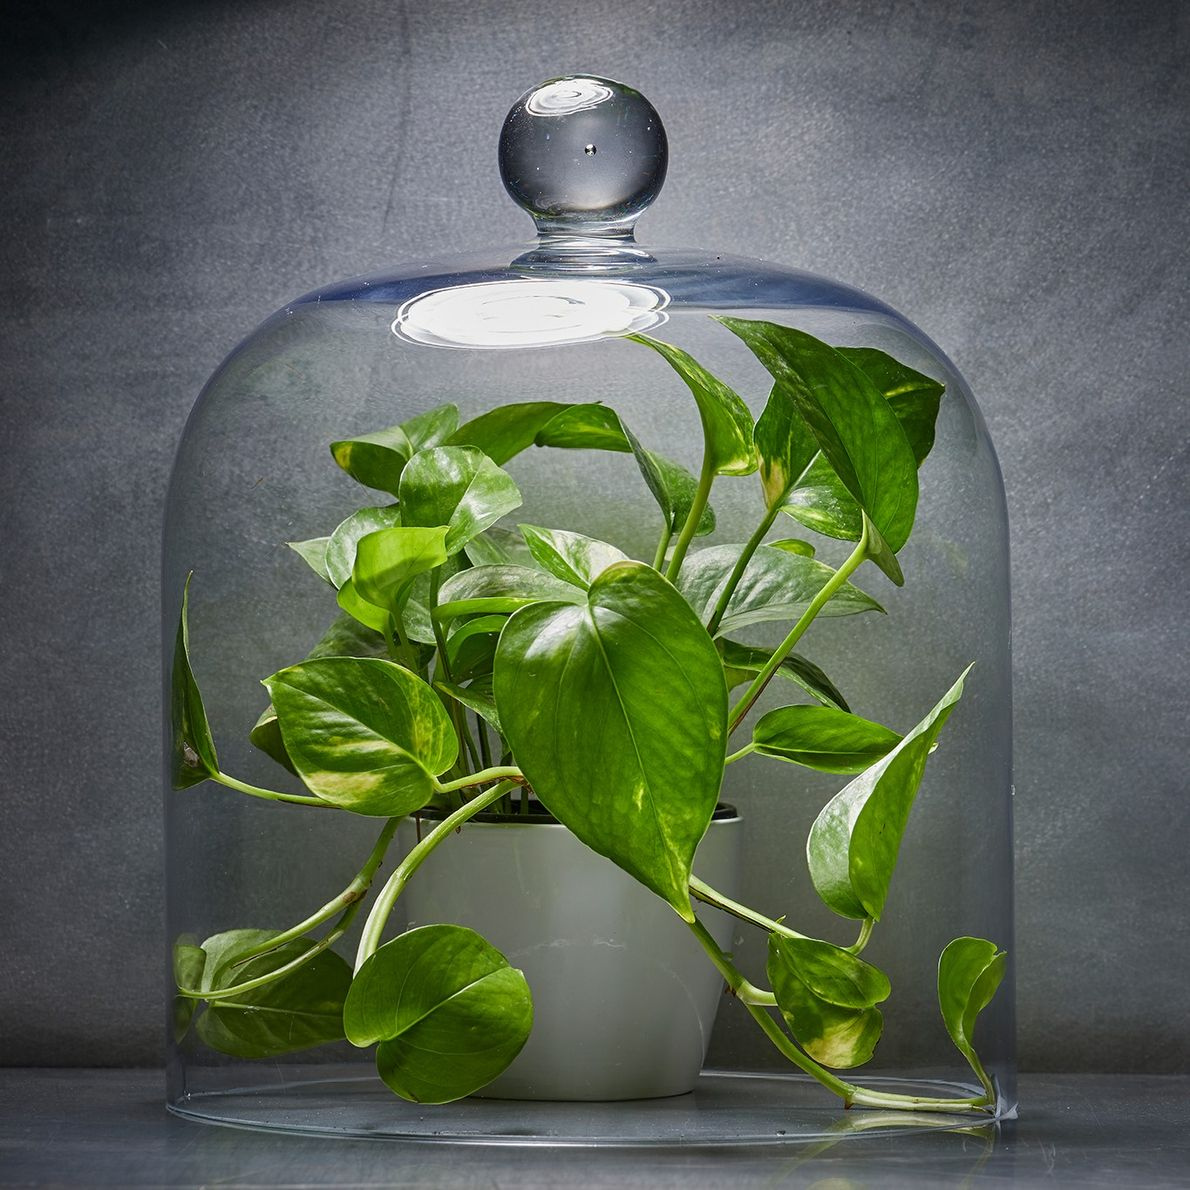 Which houseplants should you buy to purify air? None of them.